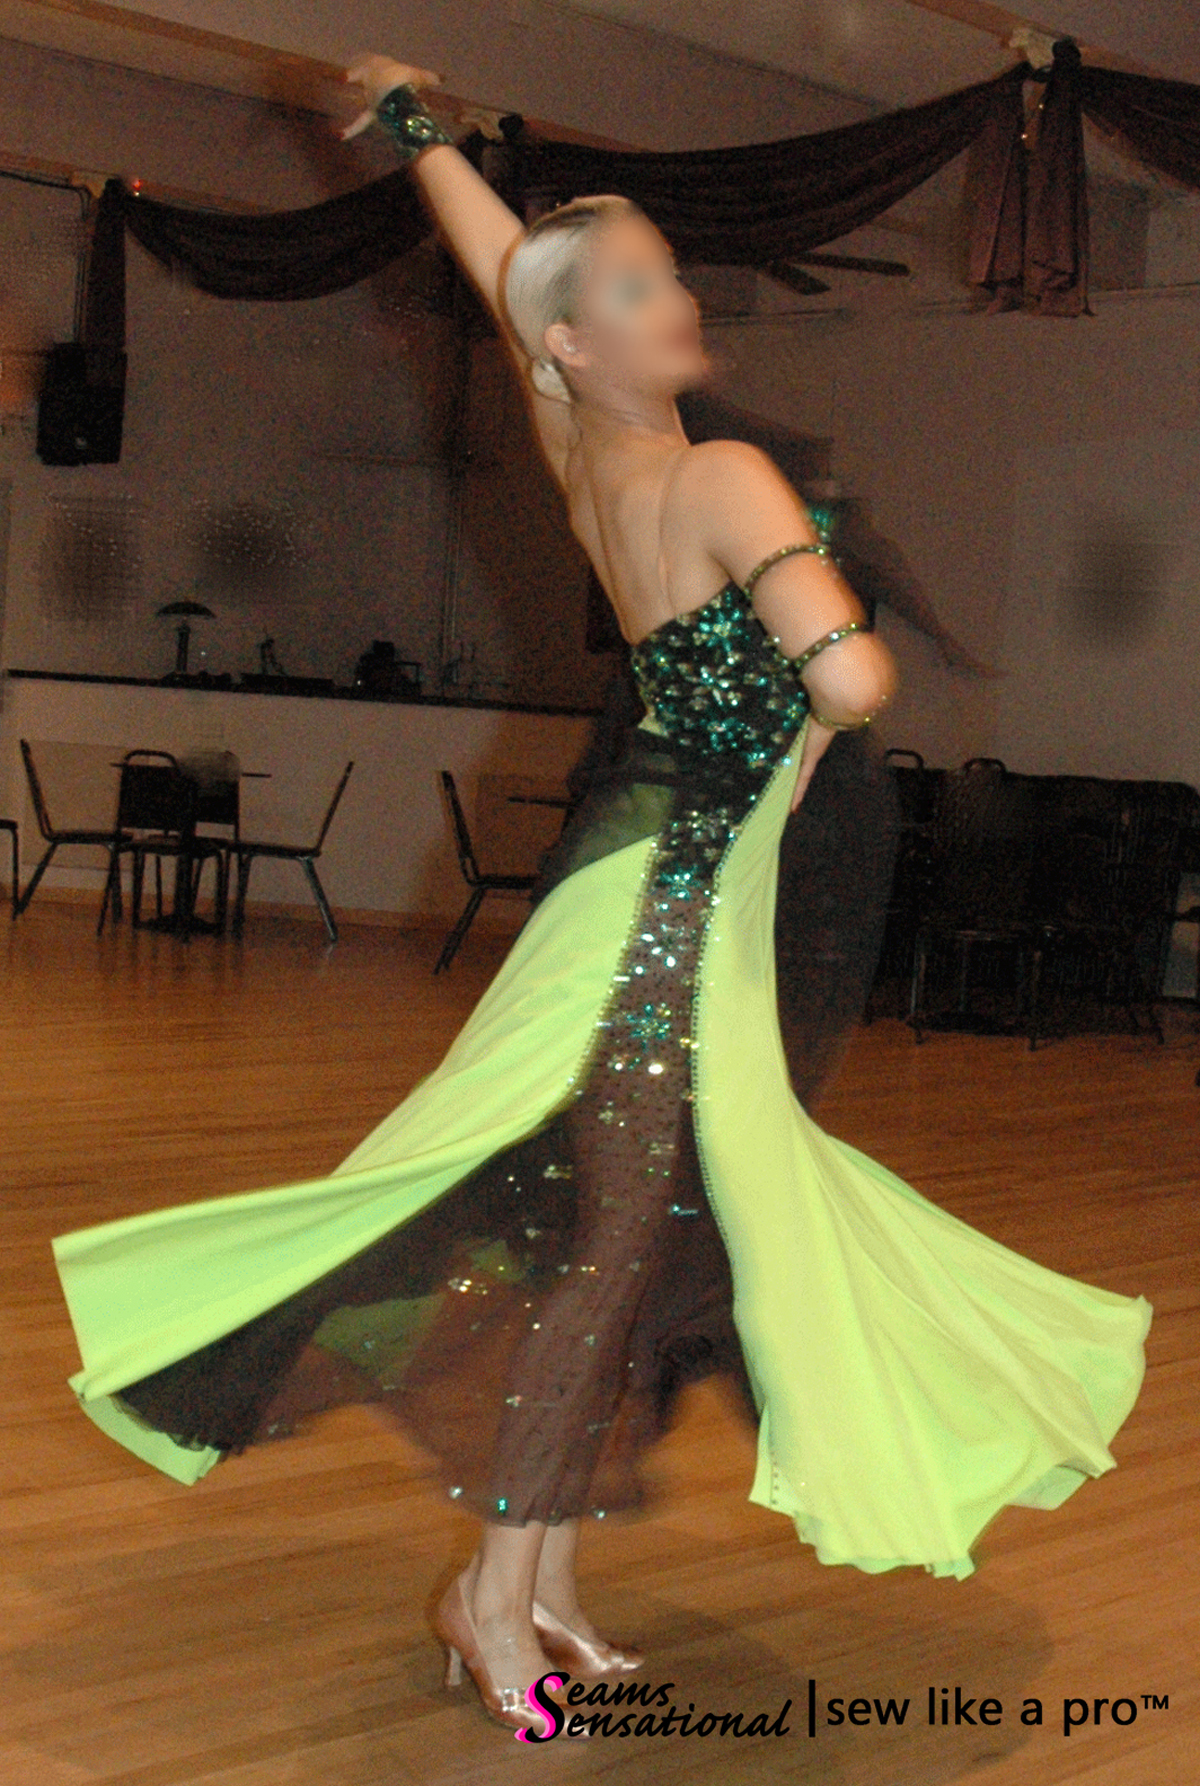 Key design element: contrasting sheer skirt panel on the competition Dancesport ballgown